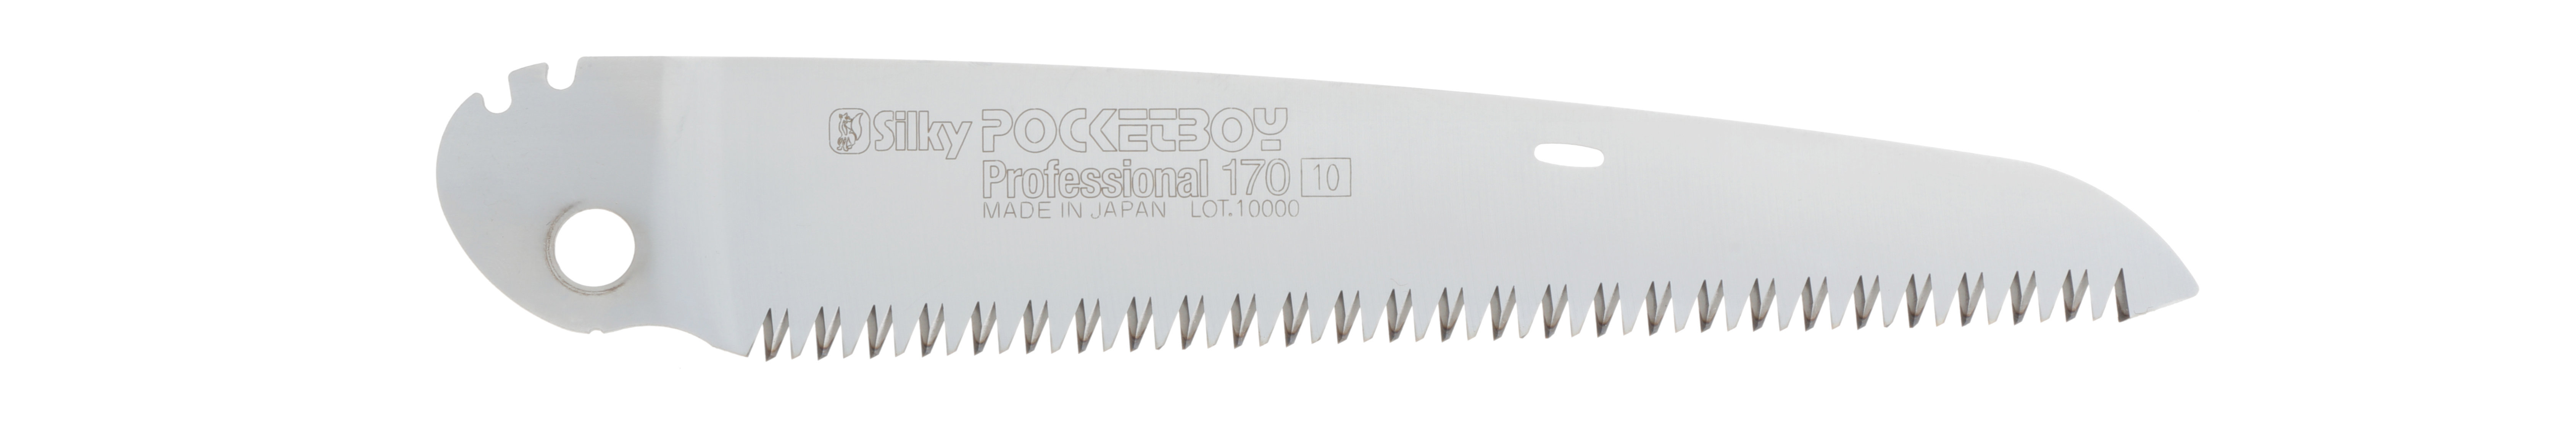 POCKETBOY 170 (LG Teeth) Extra blade SI-341-17